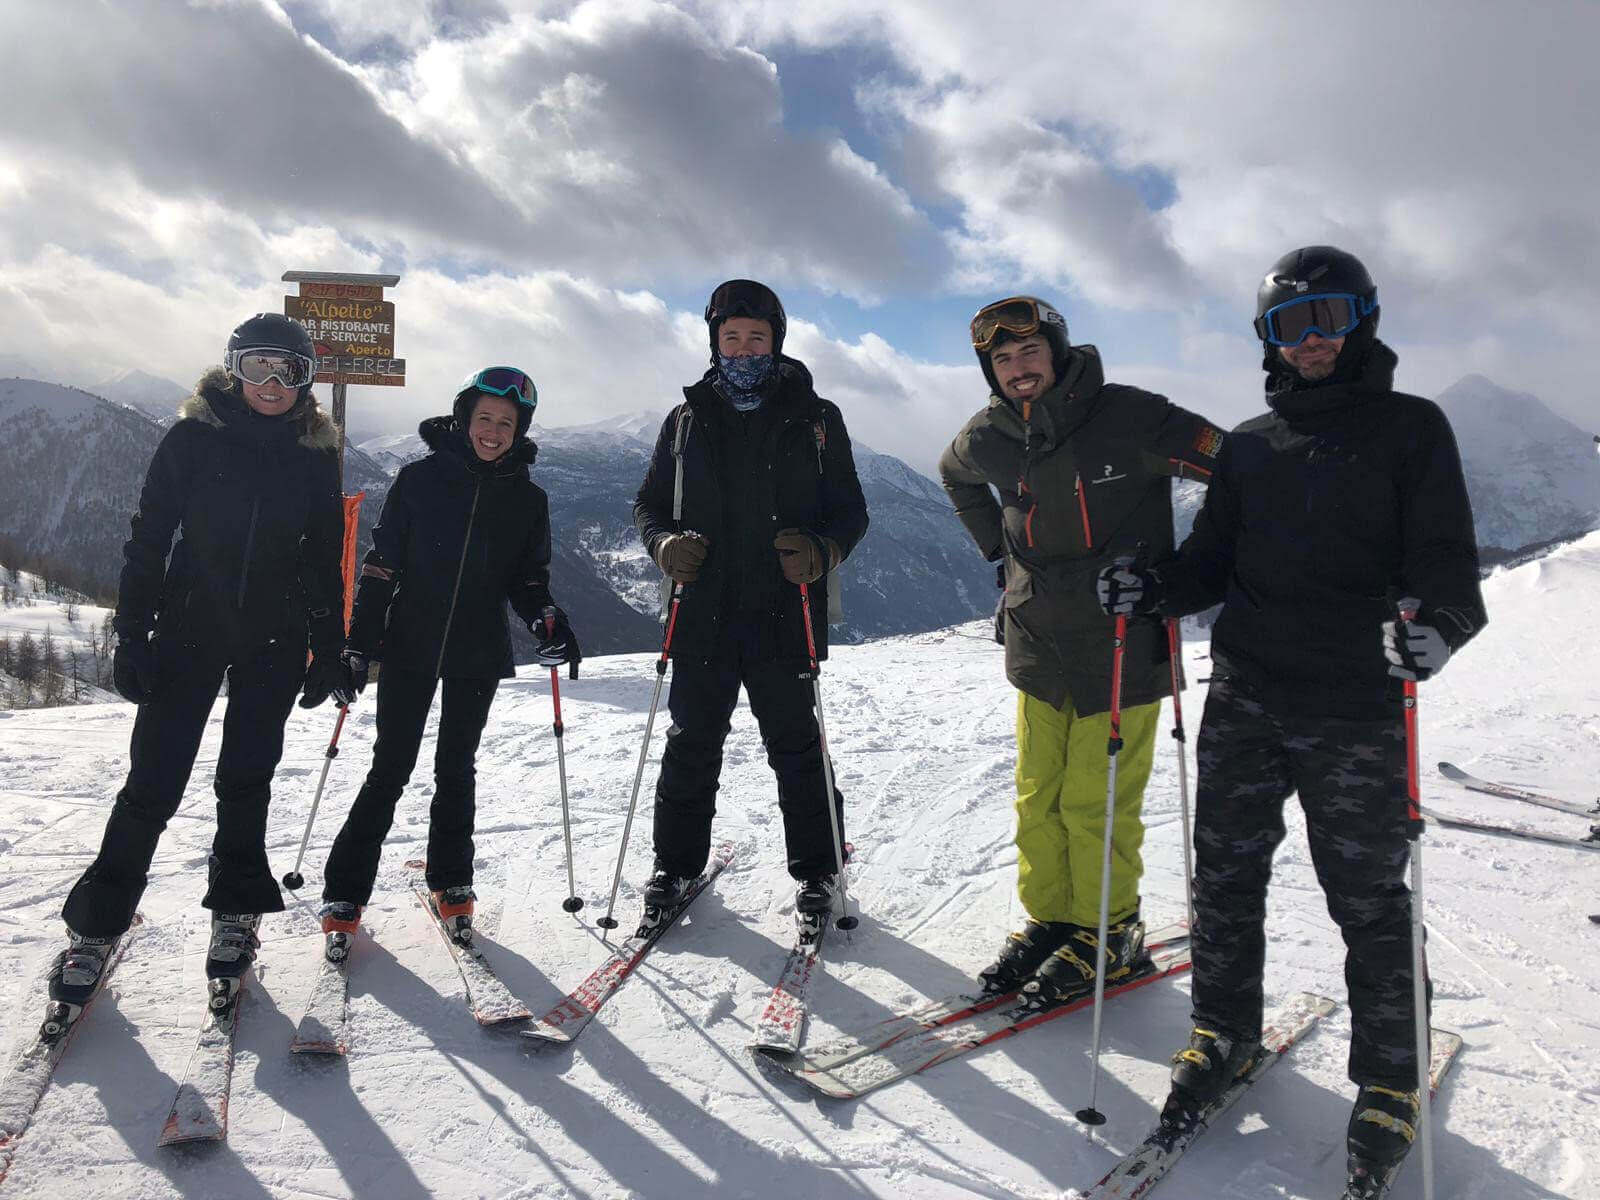 Susie and her fellow Qualtricians out skiing